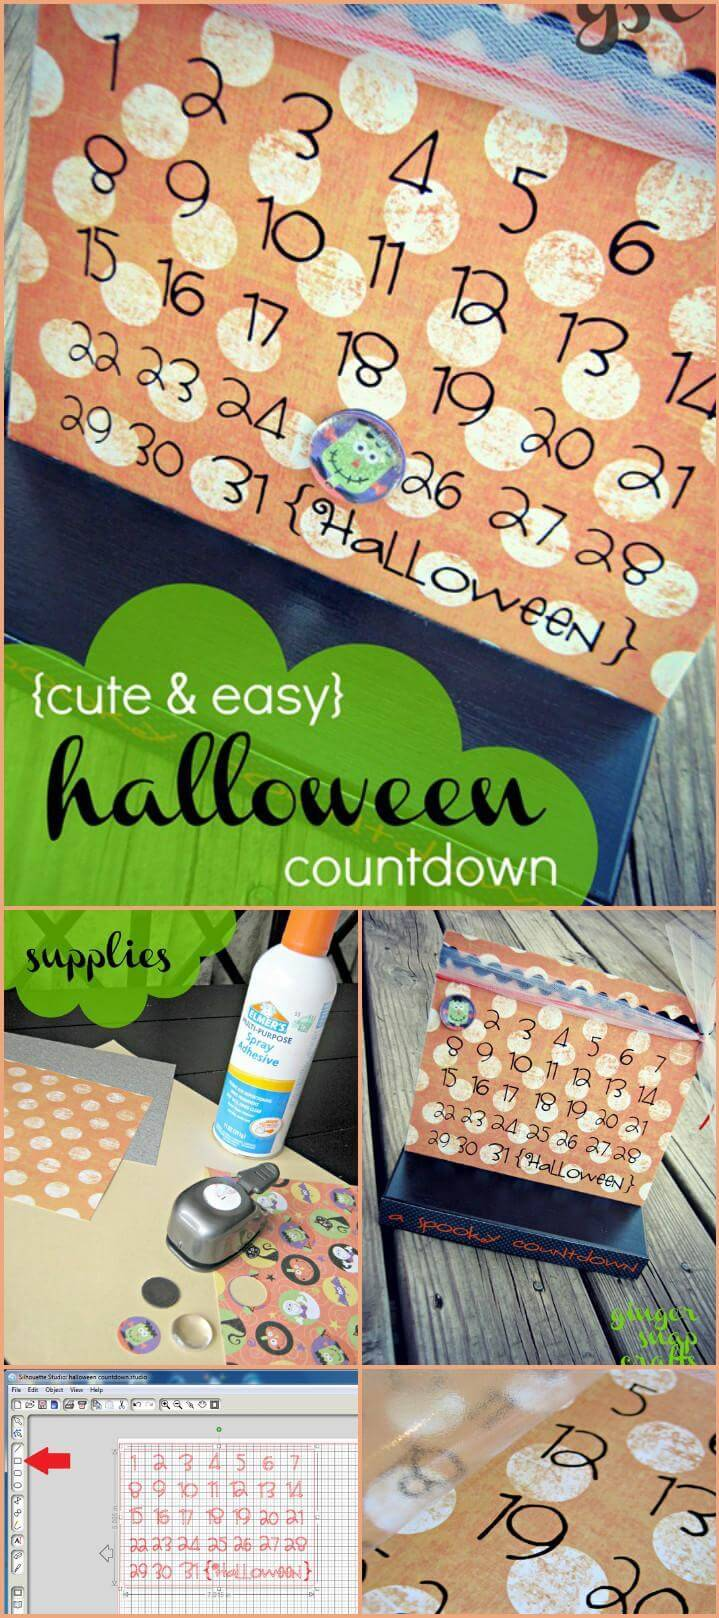 easy vinyl lettering fall crawl halloween countdown